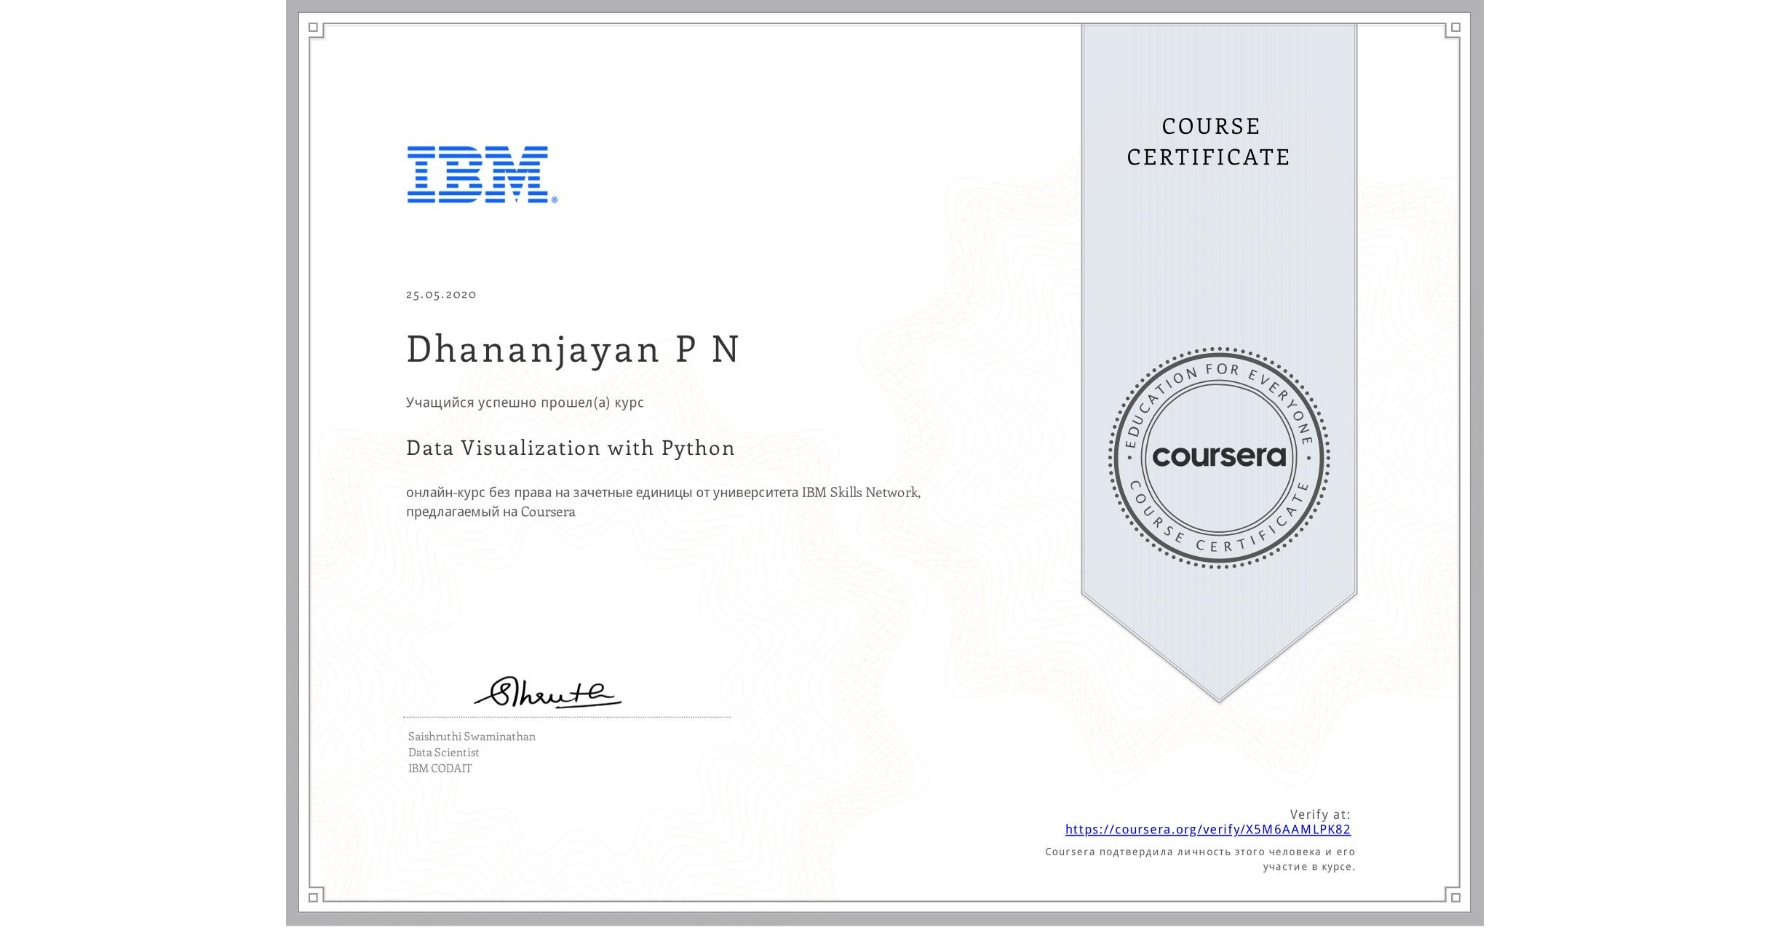 View certificate for Dhananjayan P N, Data Visualization with Python, an online non-credit course authorized by IBM and offered through Coursera